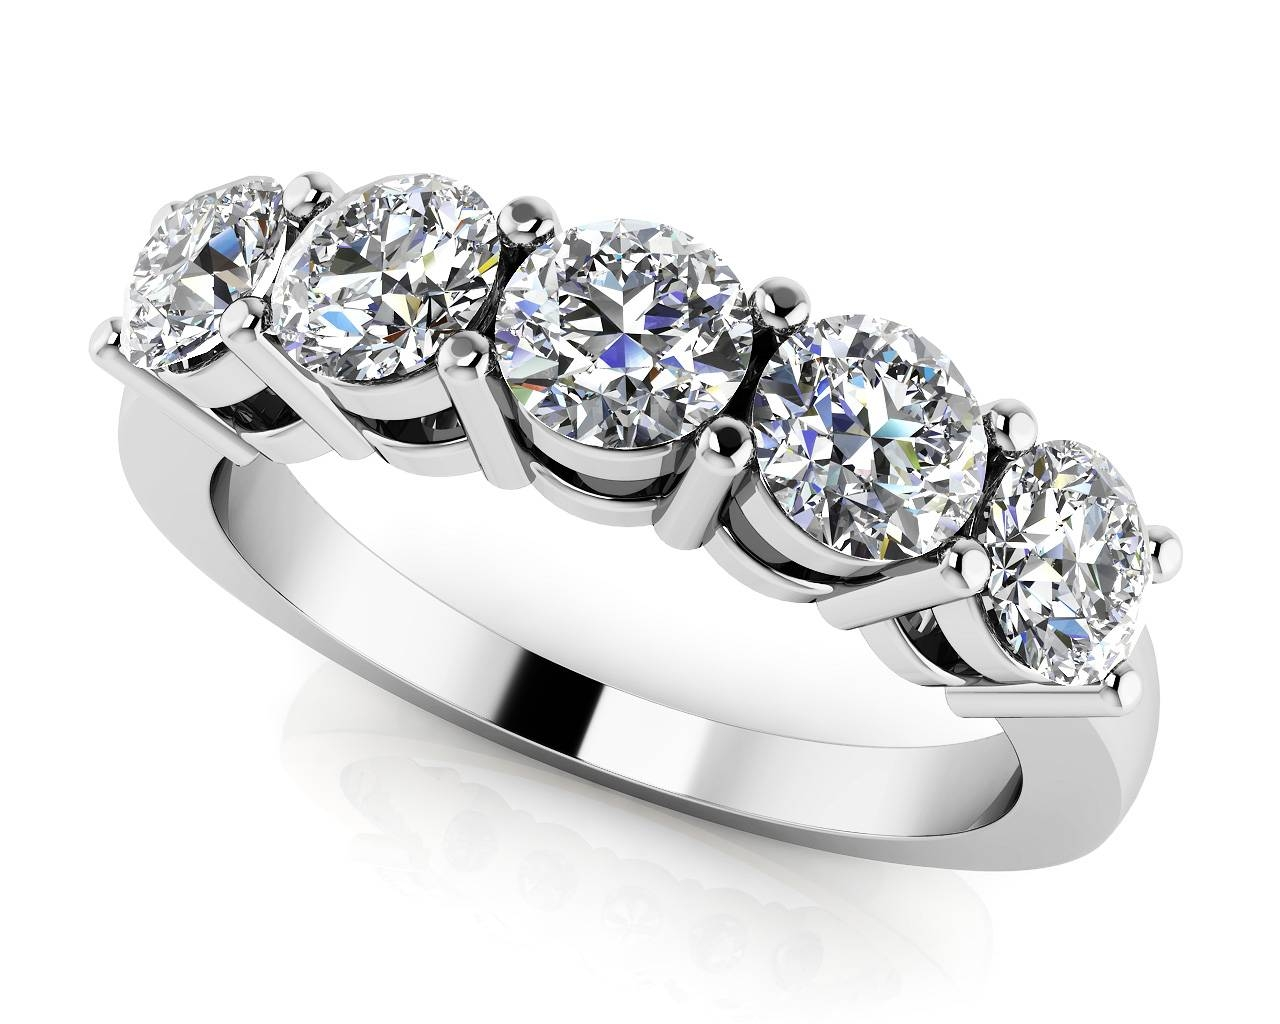 Design Your Own Diamond Anniversary Ring & Eternity Ring For Latest Diamond Anniversary Rings For Her (Gallery 9 of 25)